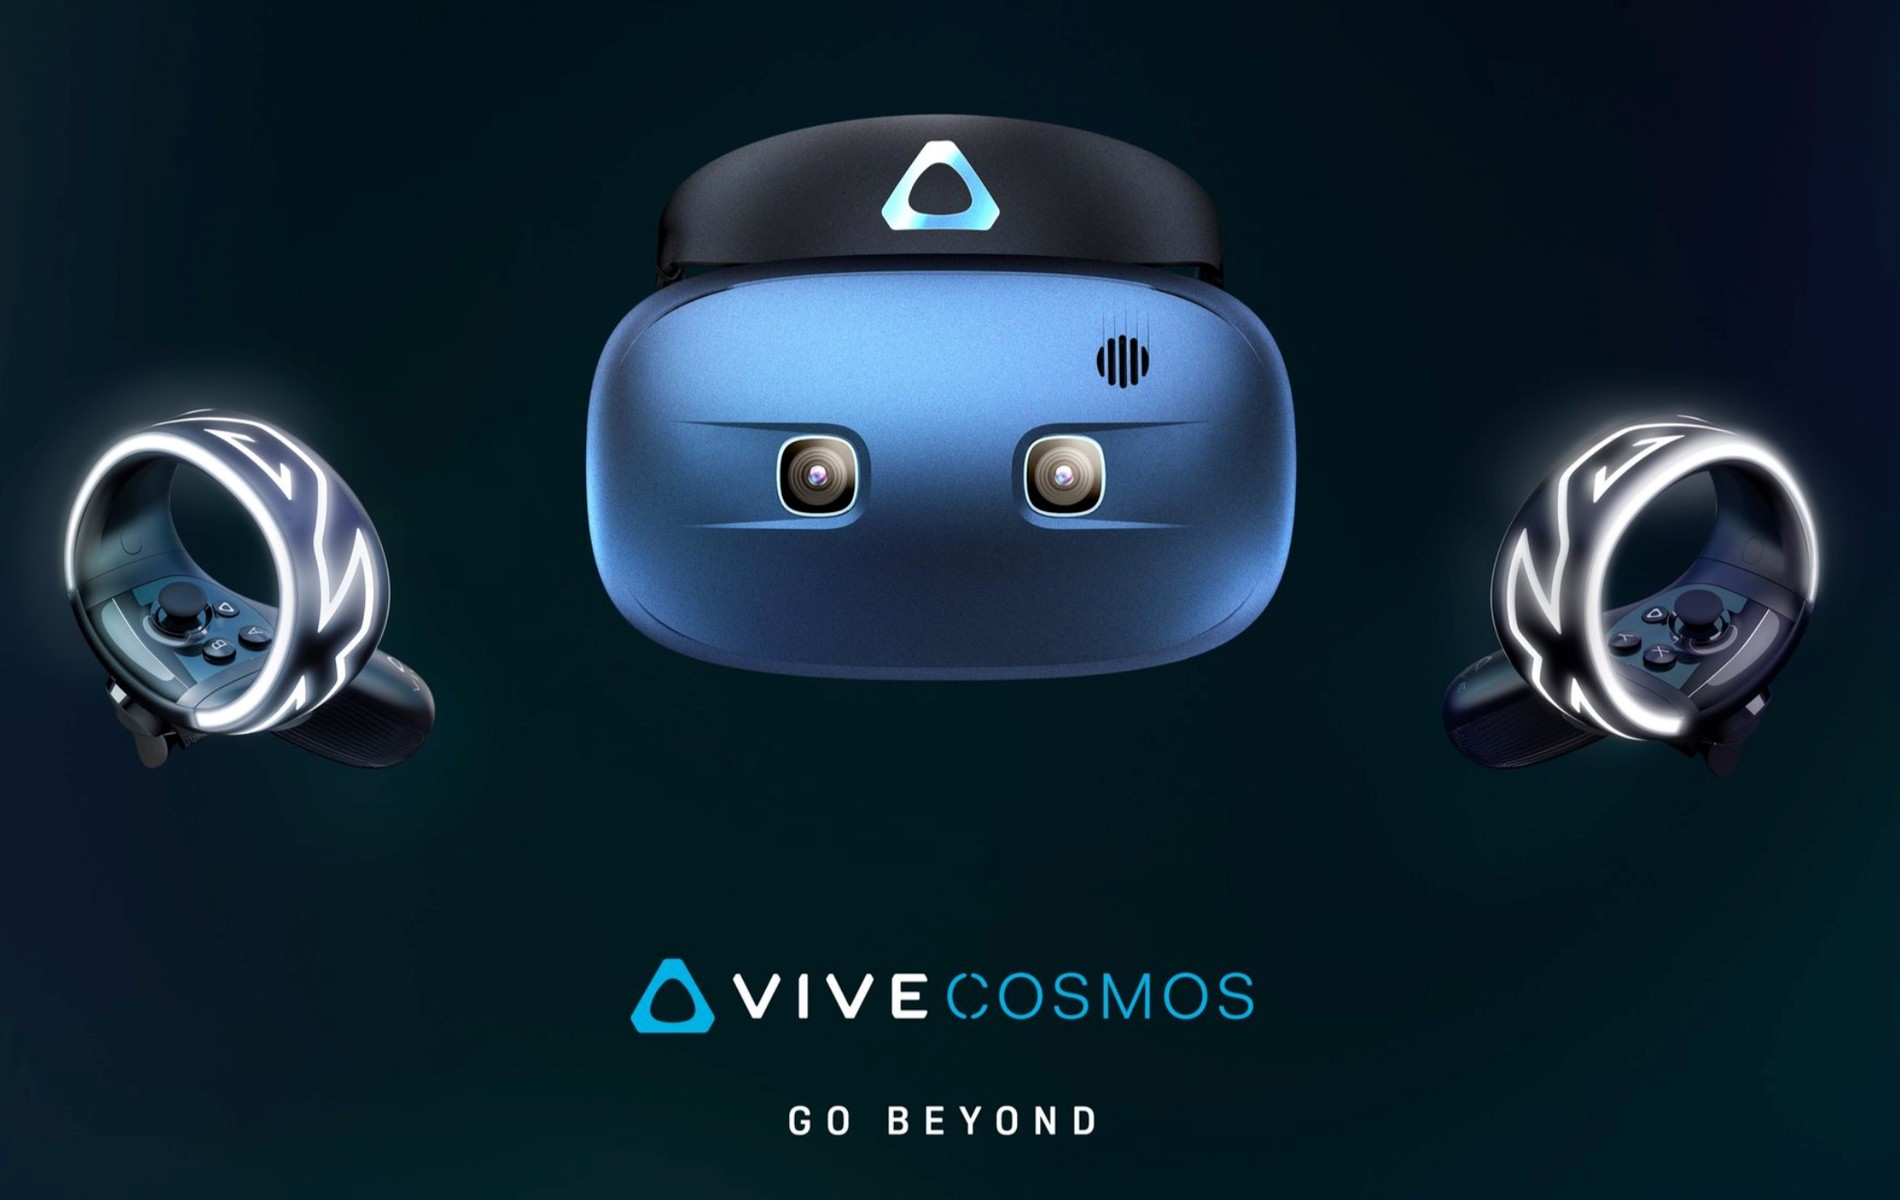 HTC's Vive Cosmos VR headset is incredible  - and frustrating - in equal measure